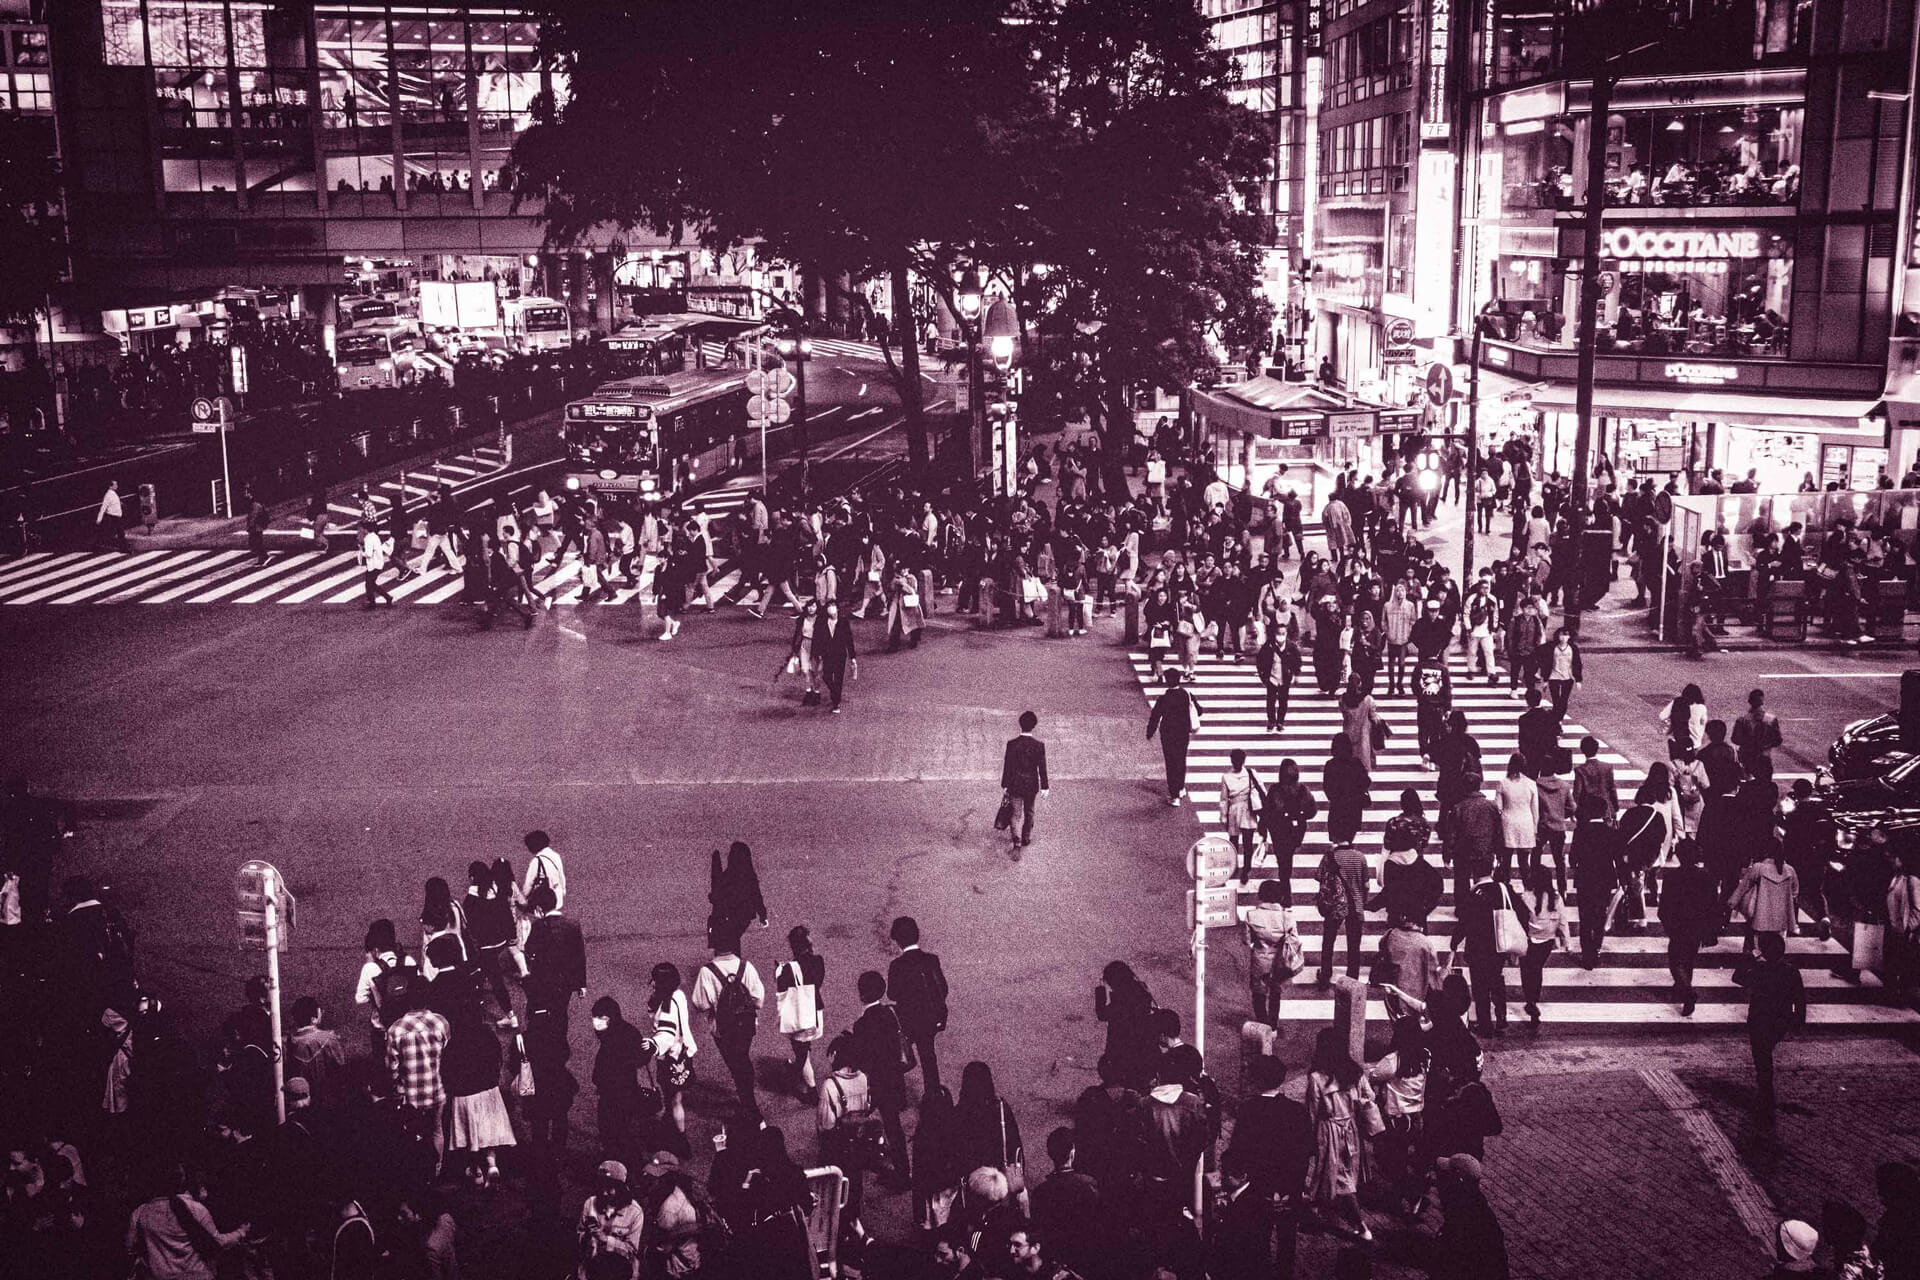 A crowded street with people walking.,